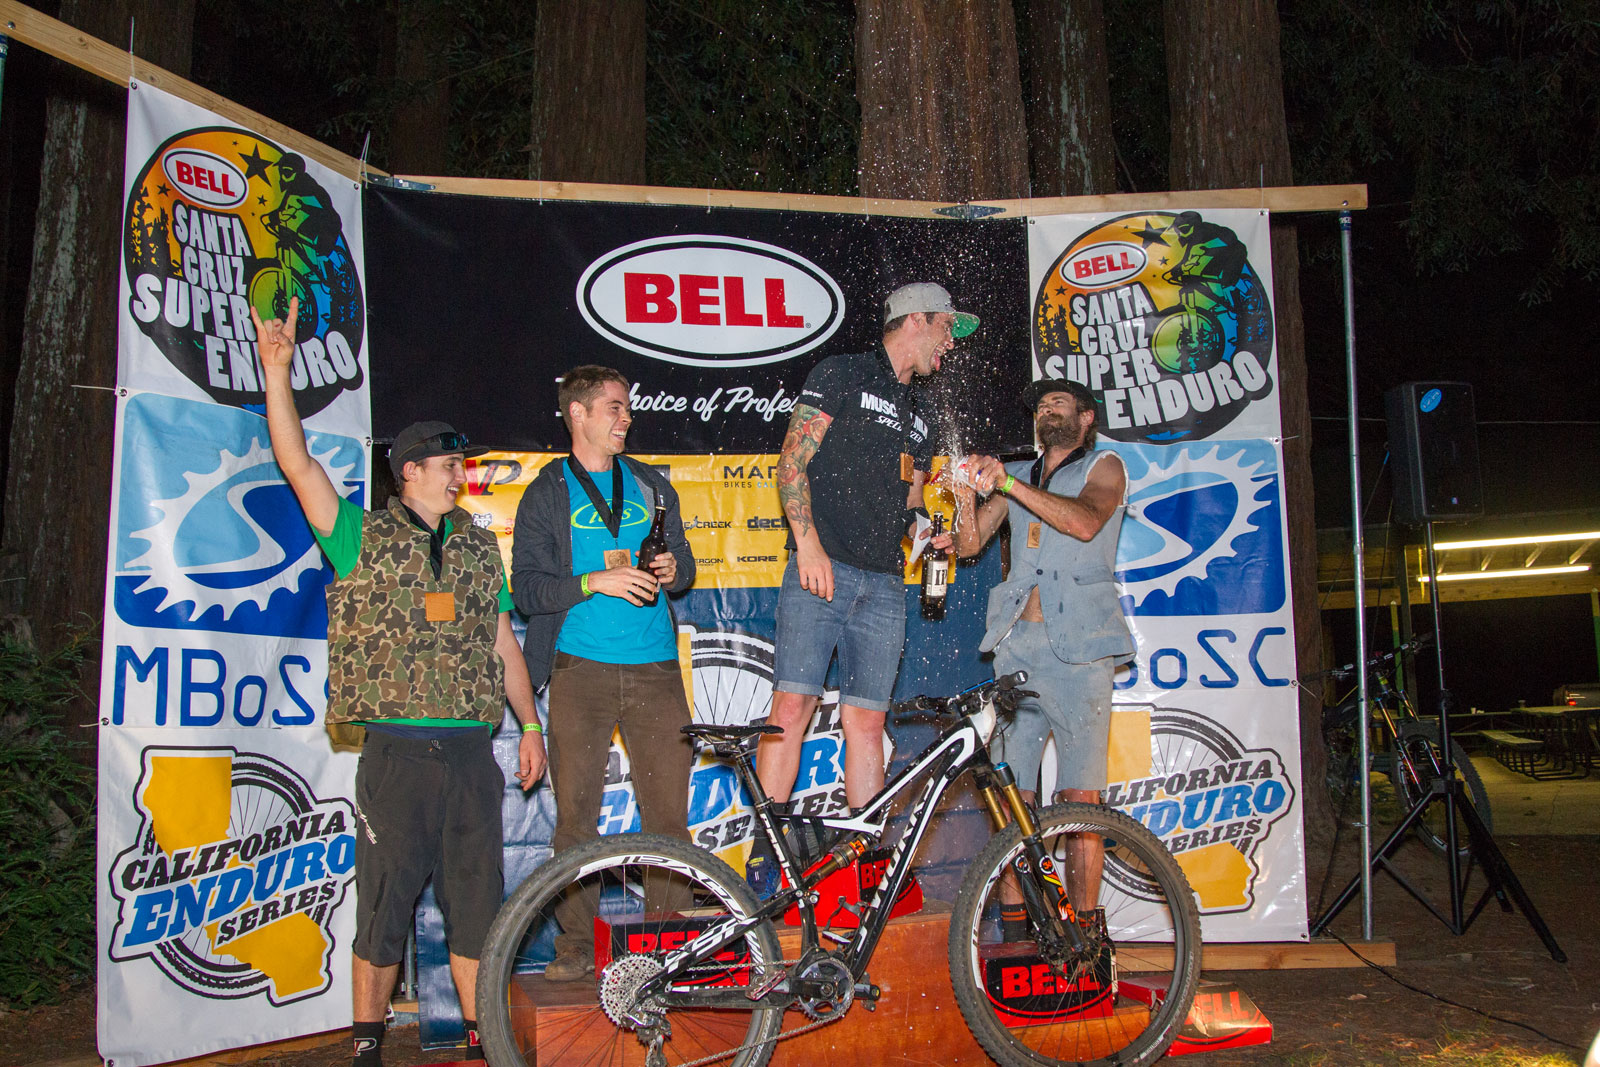 Enduro camaraderie on the 2014 series Pro Men podium. 1st - John Hauer, 2nd Jeff Kendall-Weed, 3rd - Scott Chapin, 4th Marco Osborne, 5th Aaron Bradford (not pictured) (Bogdan Marian).